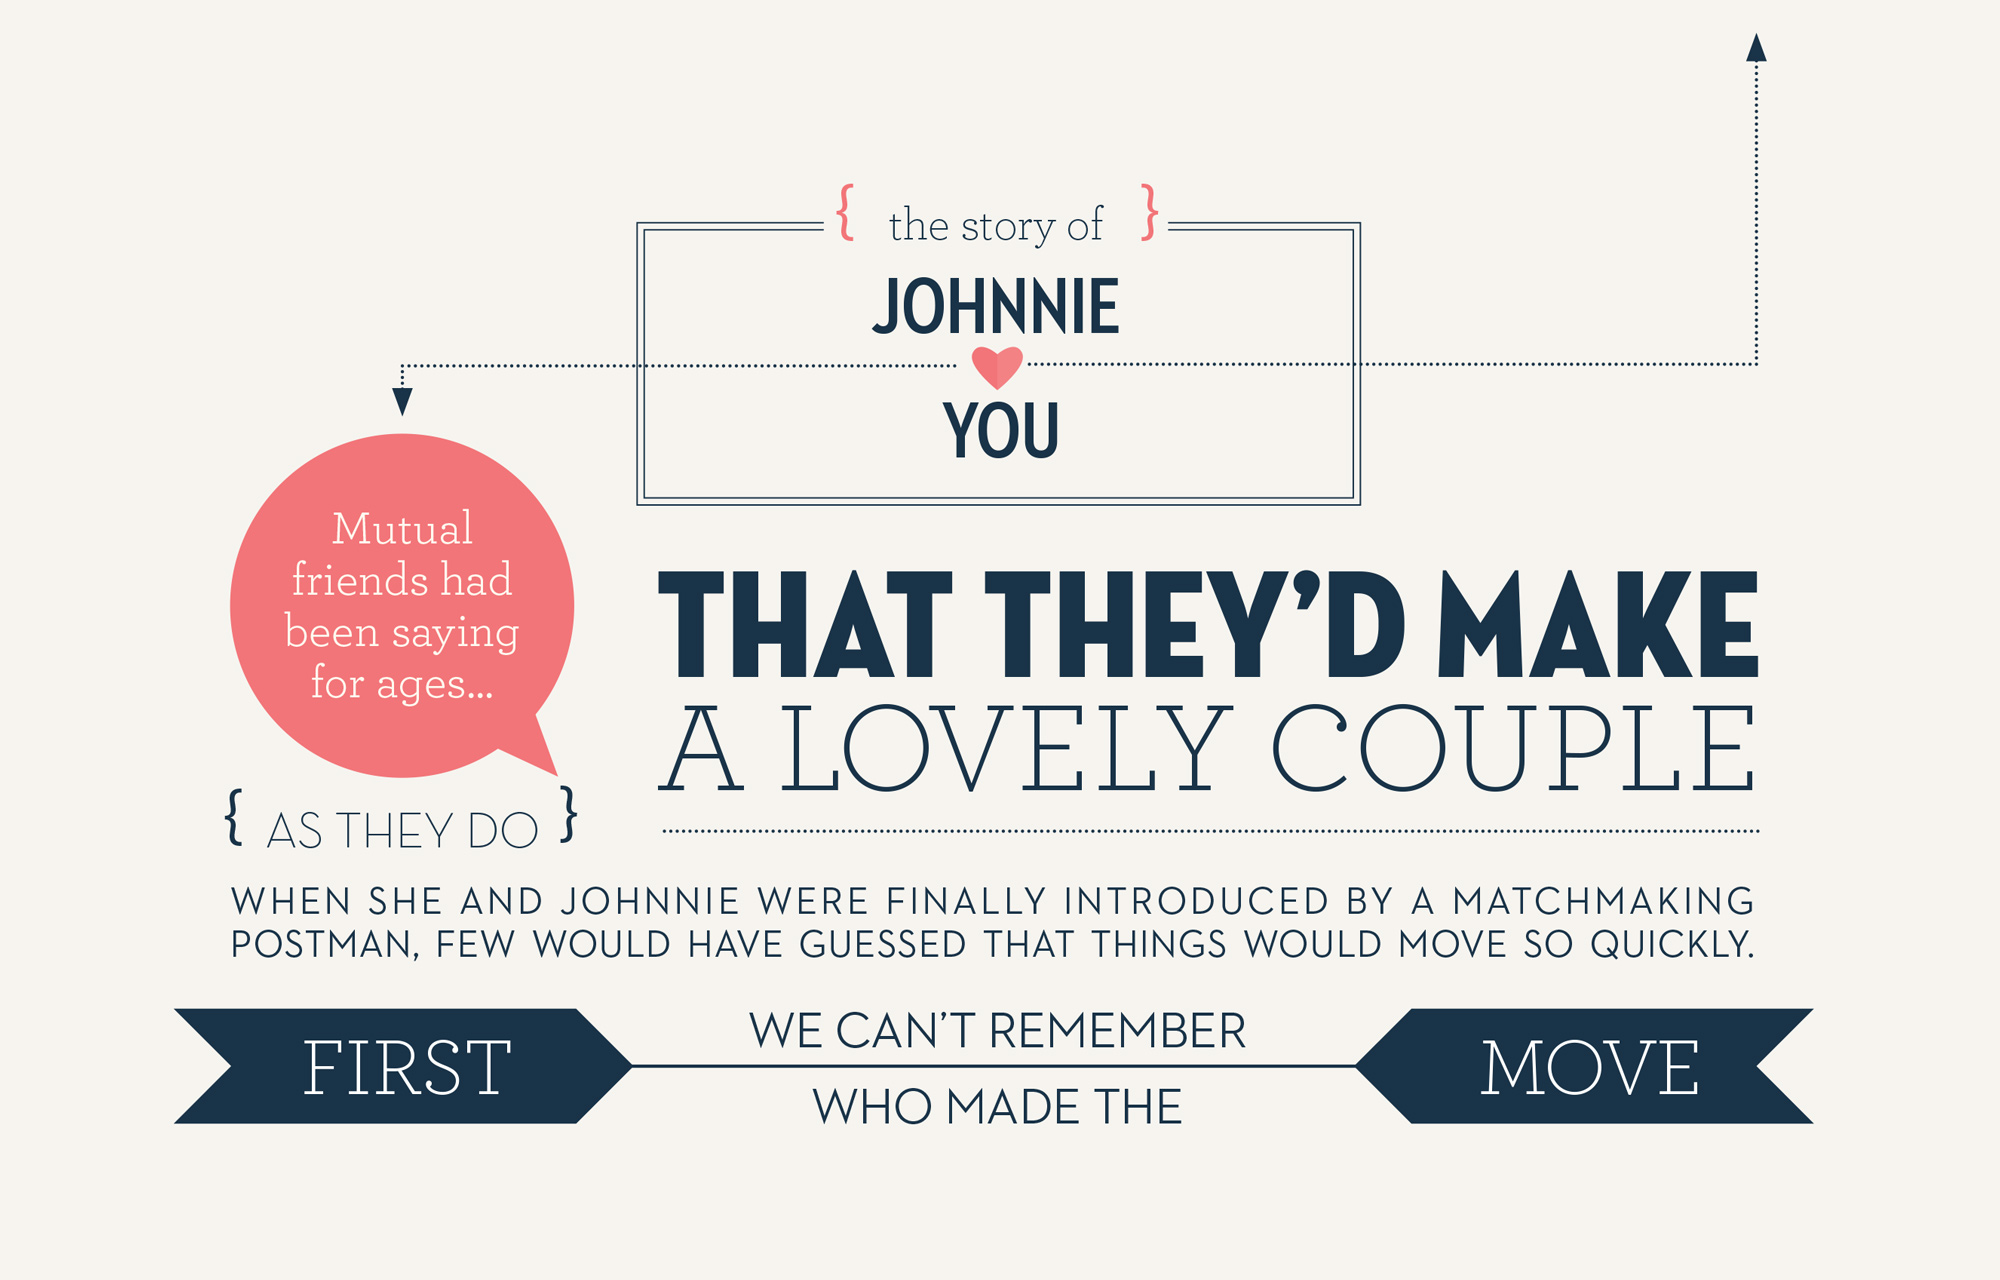 Boden personalised marketing love story between Johnnie Boden and customer. Typographic design by Brittany Hurdle